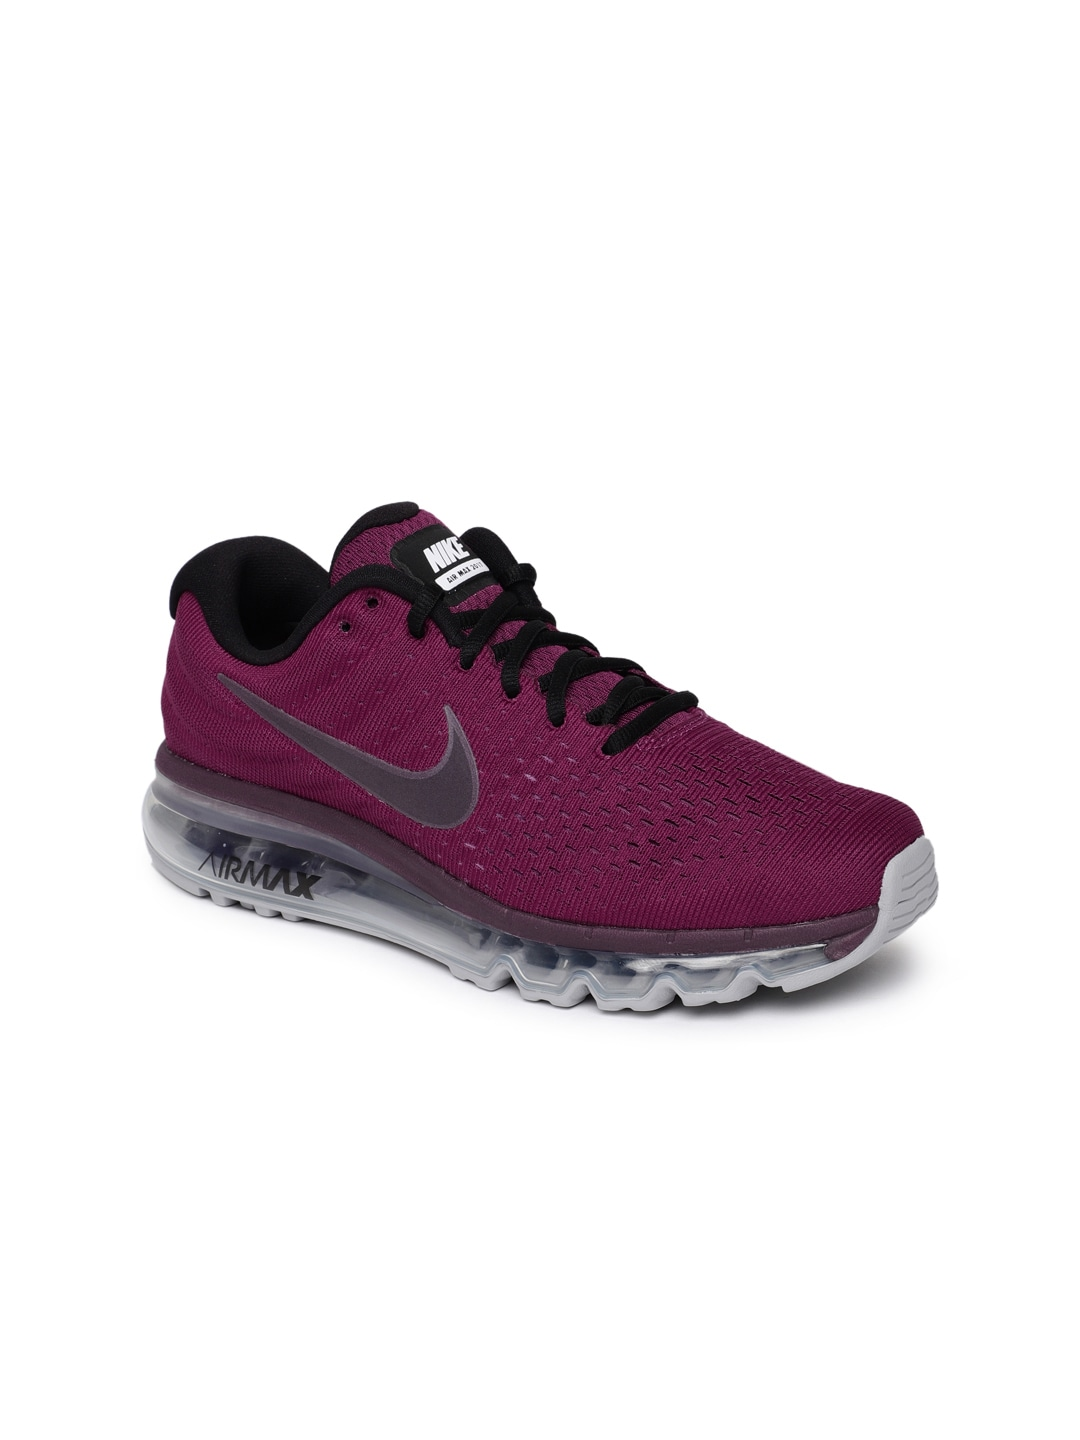 e207c2714a29 Nike Air Max Shoes - Buy Nike Air Max Shoes Online for Men   Women